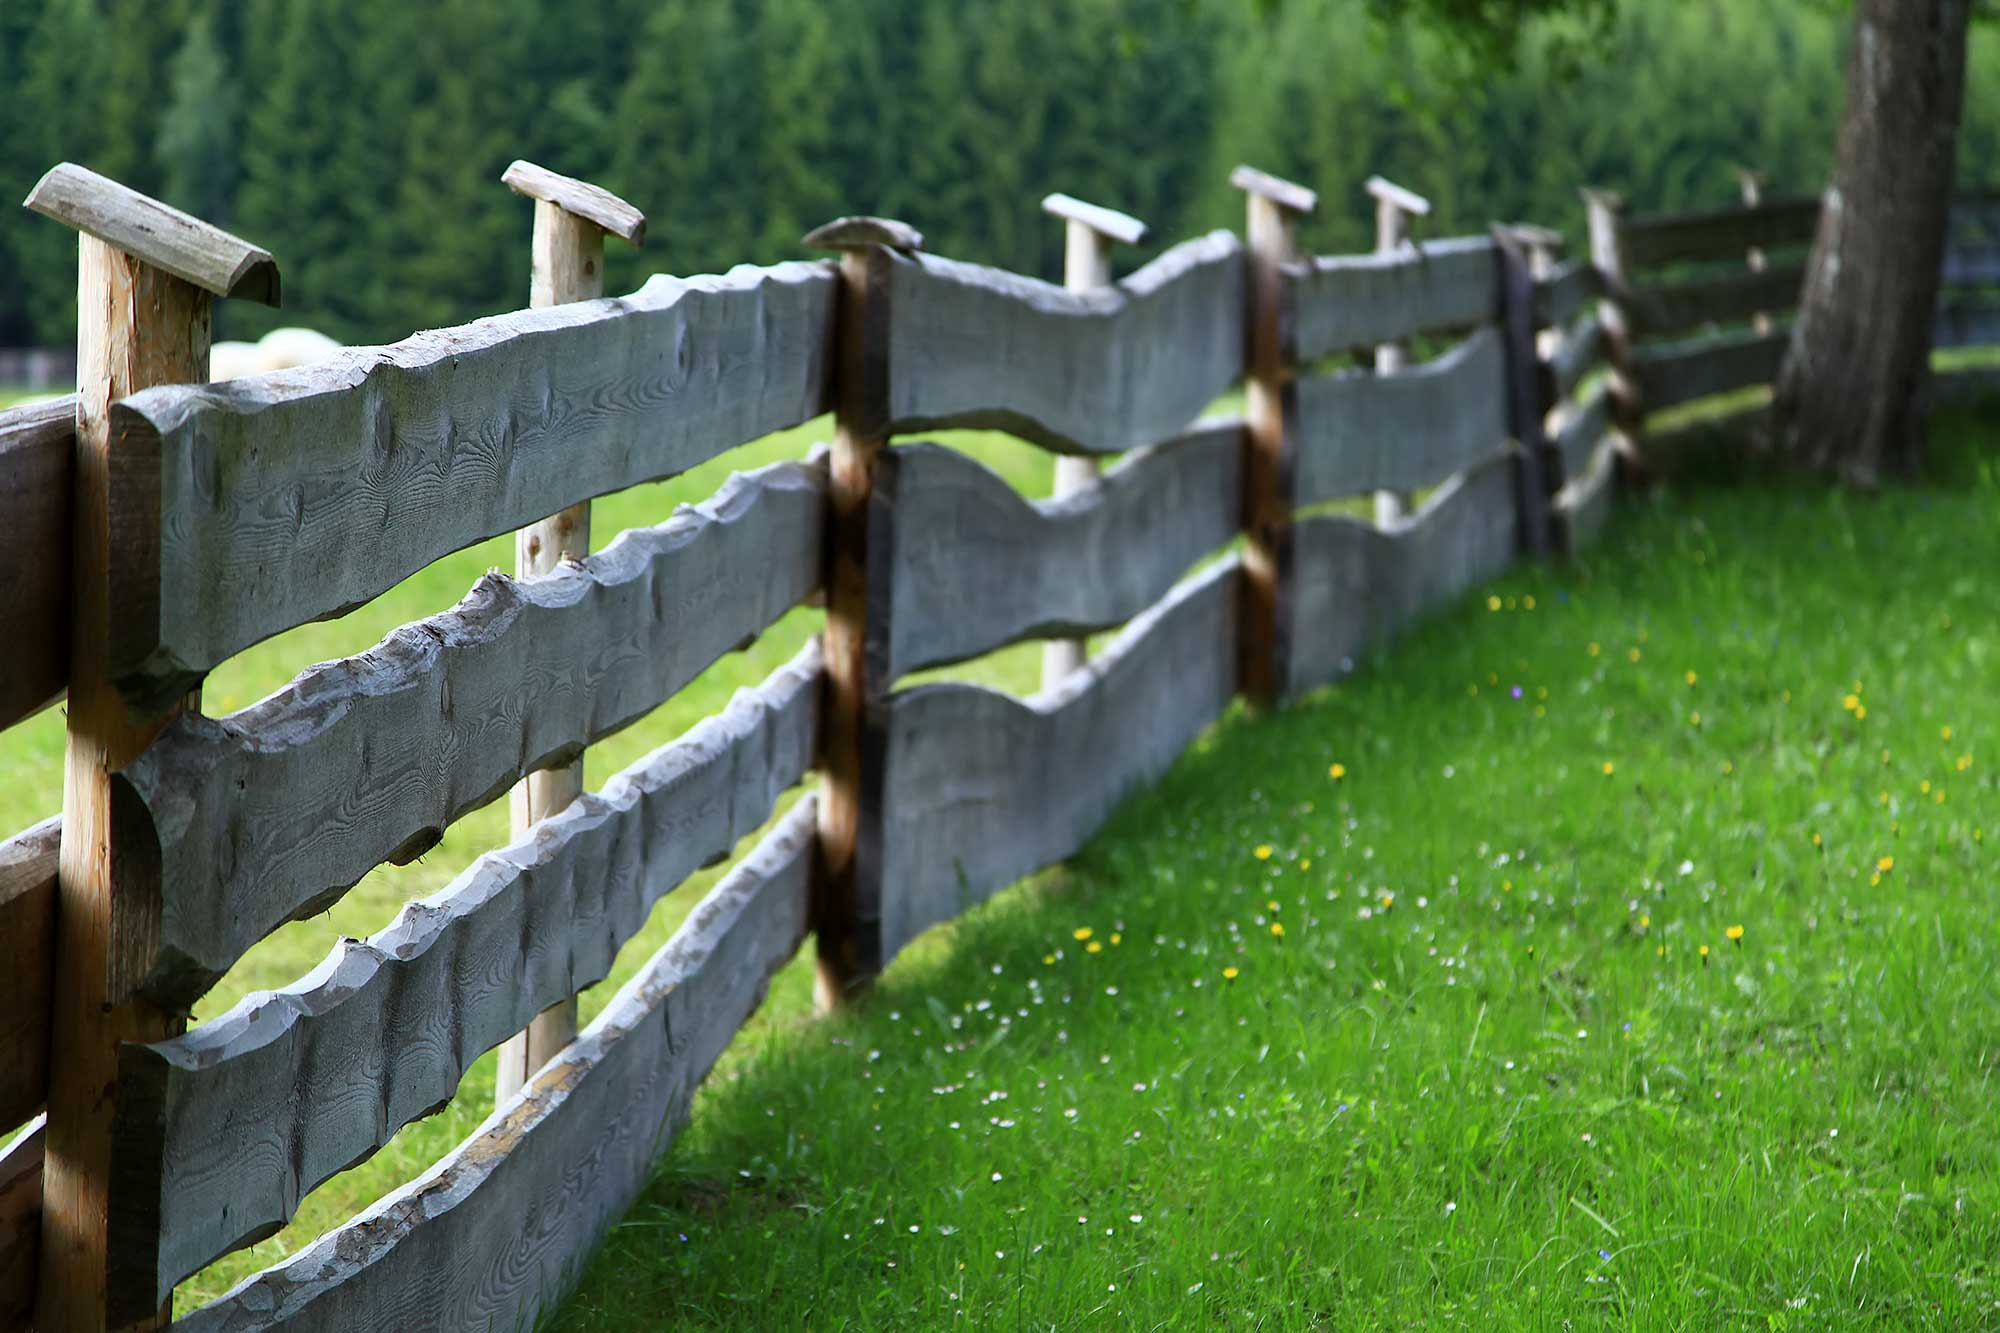 A fence in Goestling, Lower Austria. © Ulli Maier & Nisa Maier